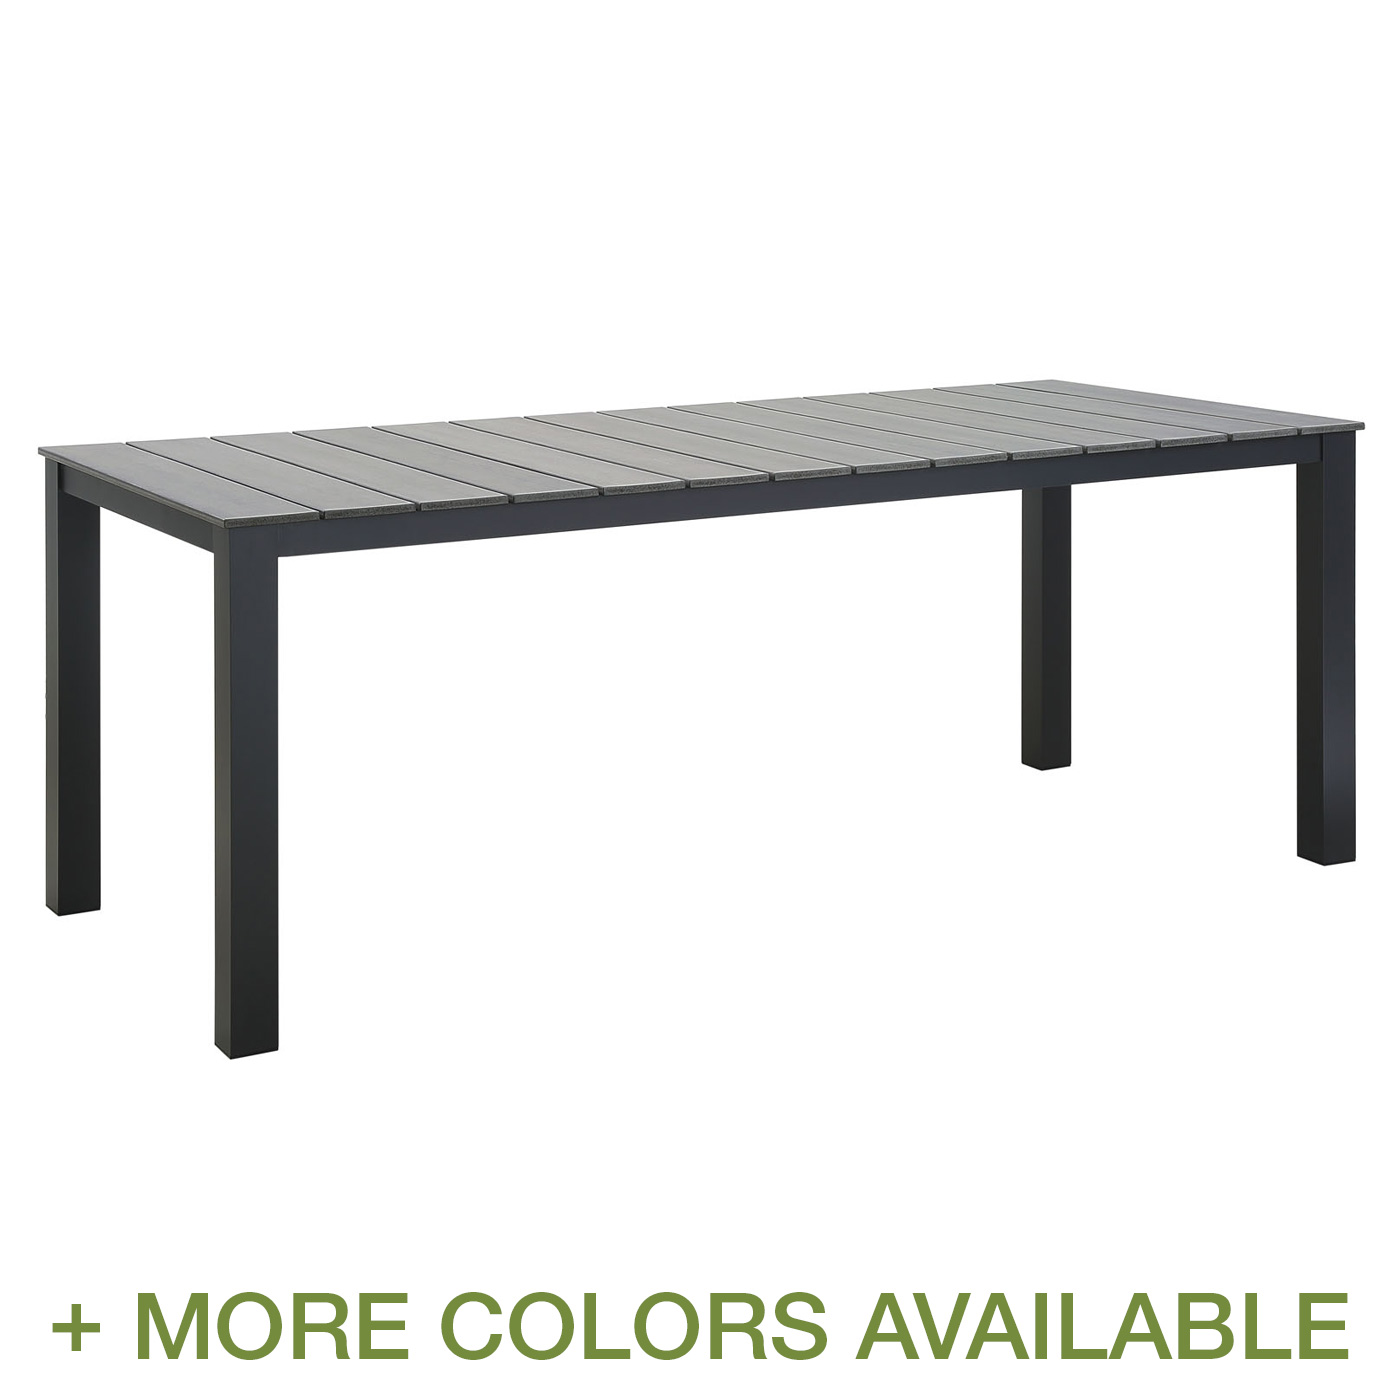 "Modway Maine 80"" Outdoor Patio Dining Table FREE SHIPPING"